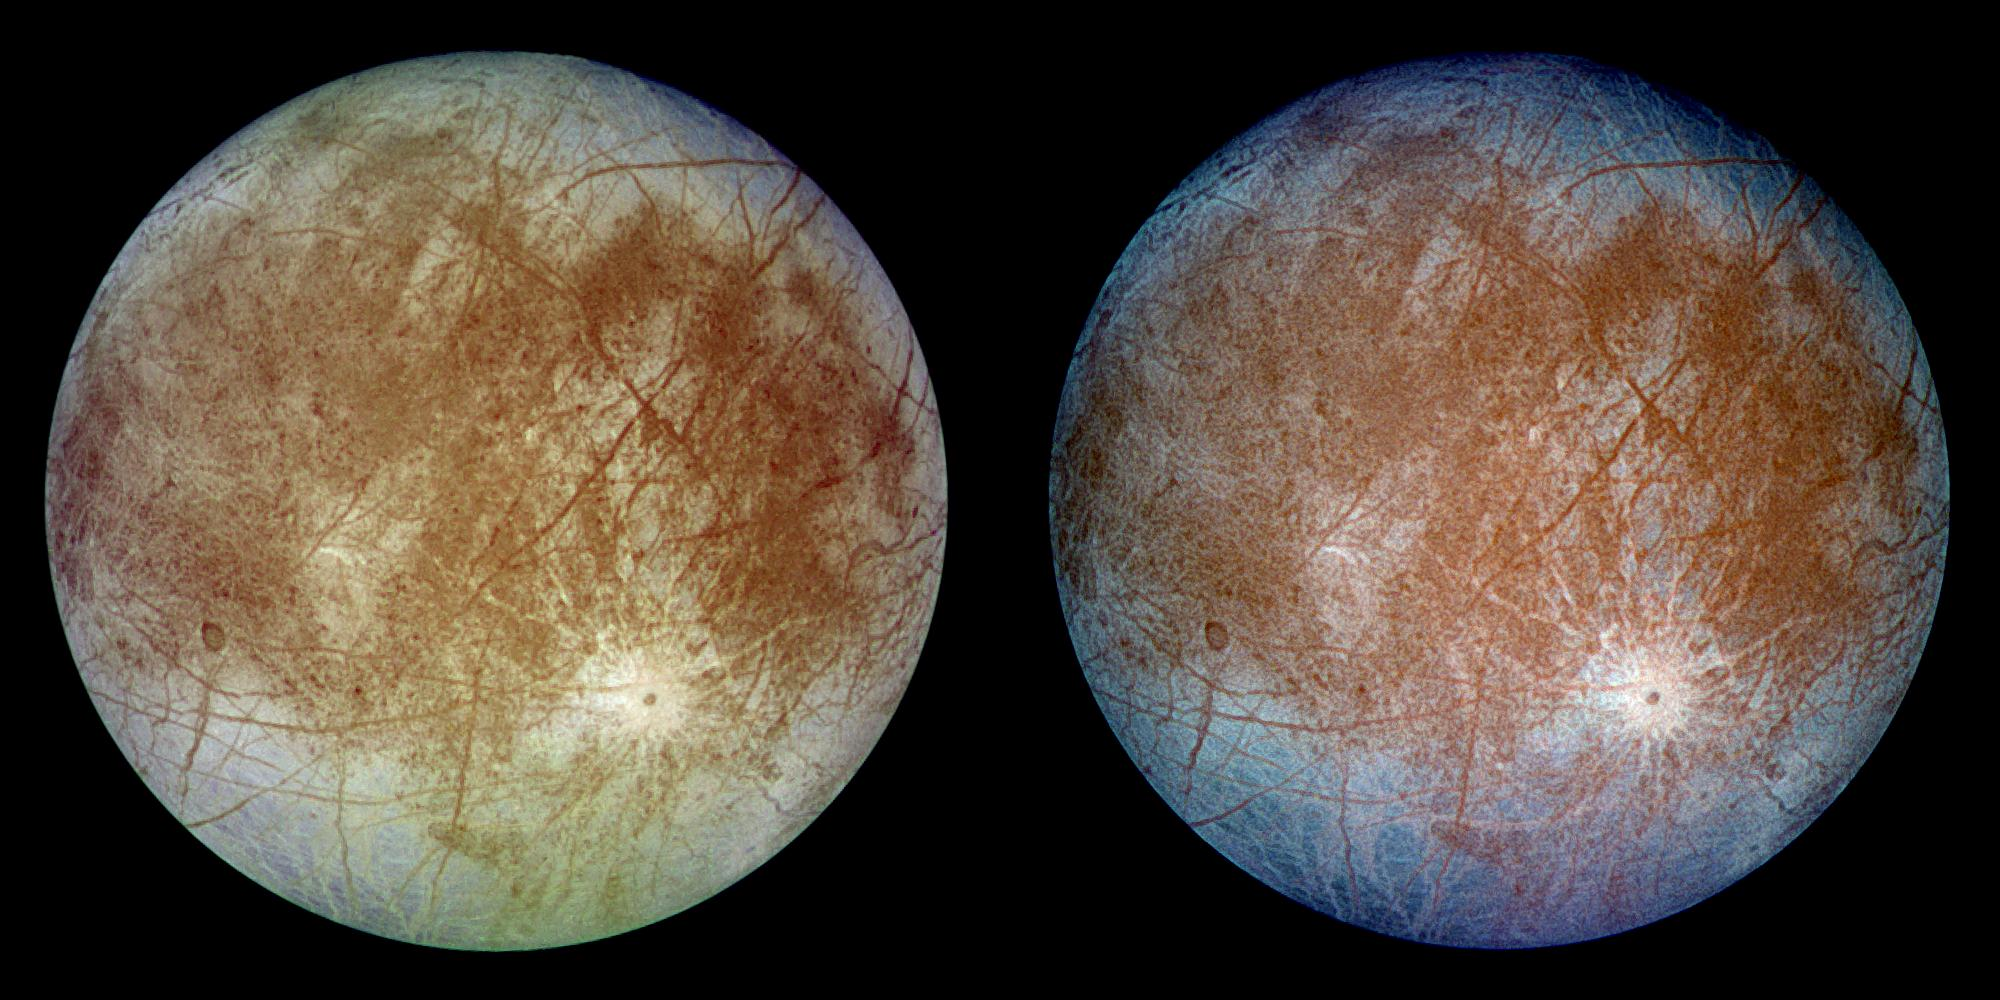 NASA Wants Ideas for Mission to Jupiter's Icy Moon Europa